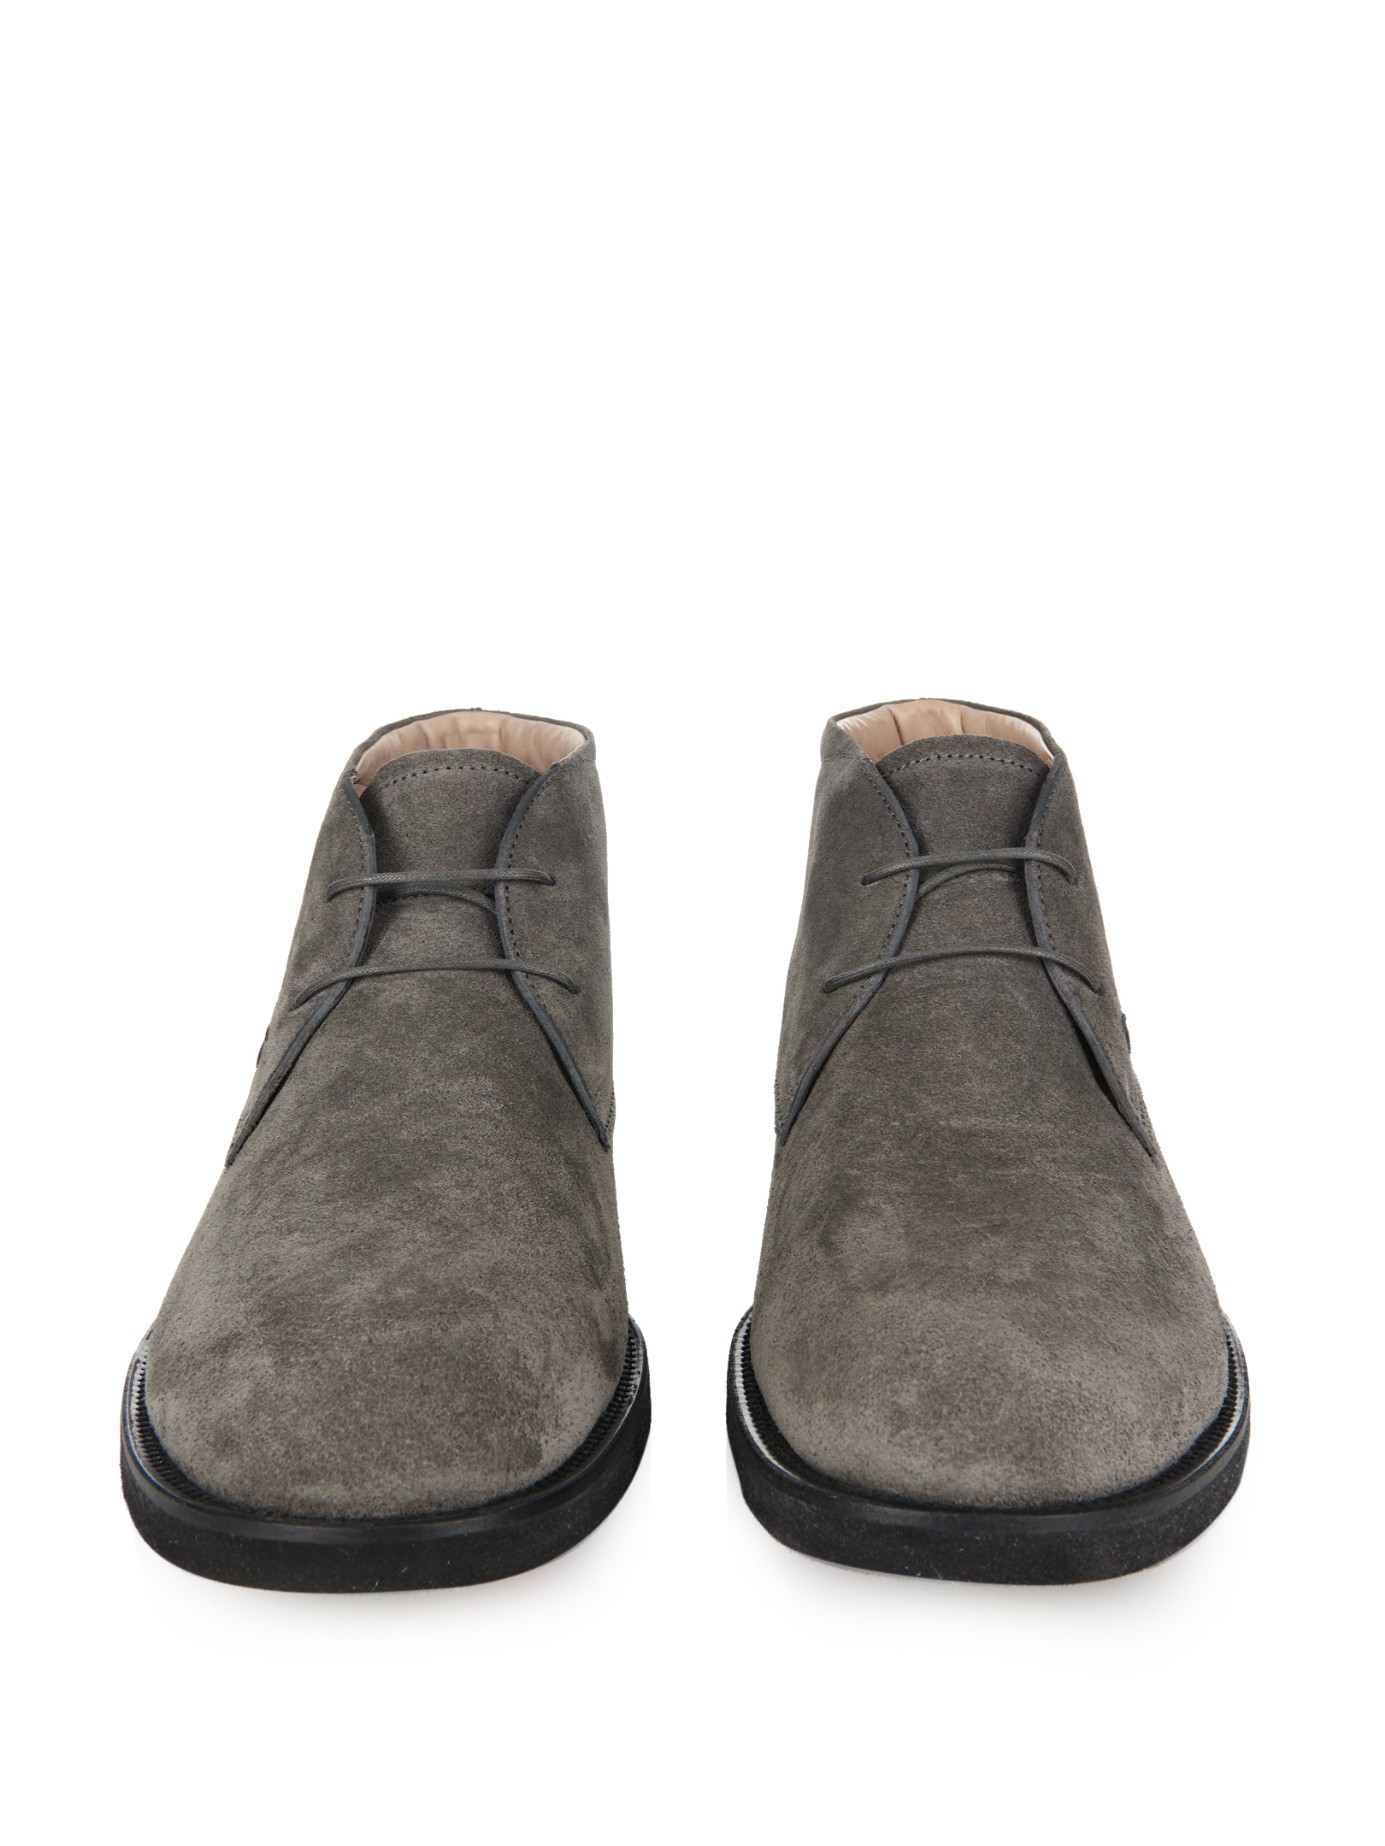 Tod's Suede Desert Boots free shipping wide range of cheap visit free shipping Inexpensive where can i order JqipuUGU